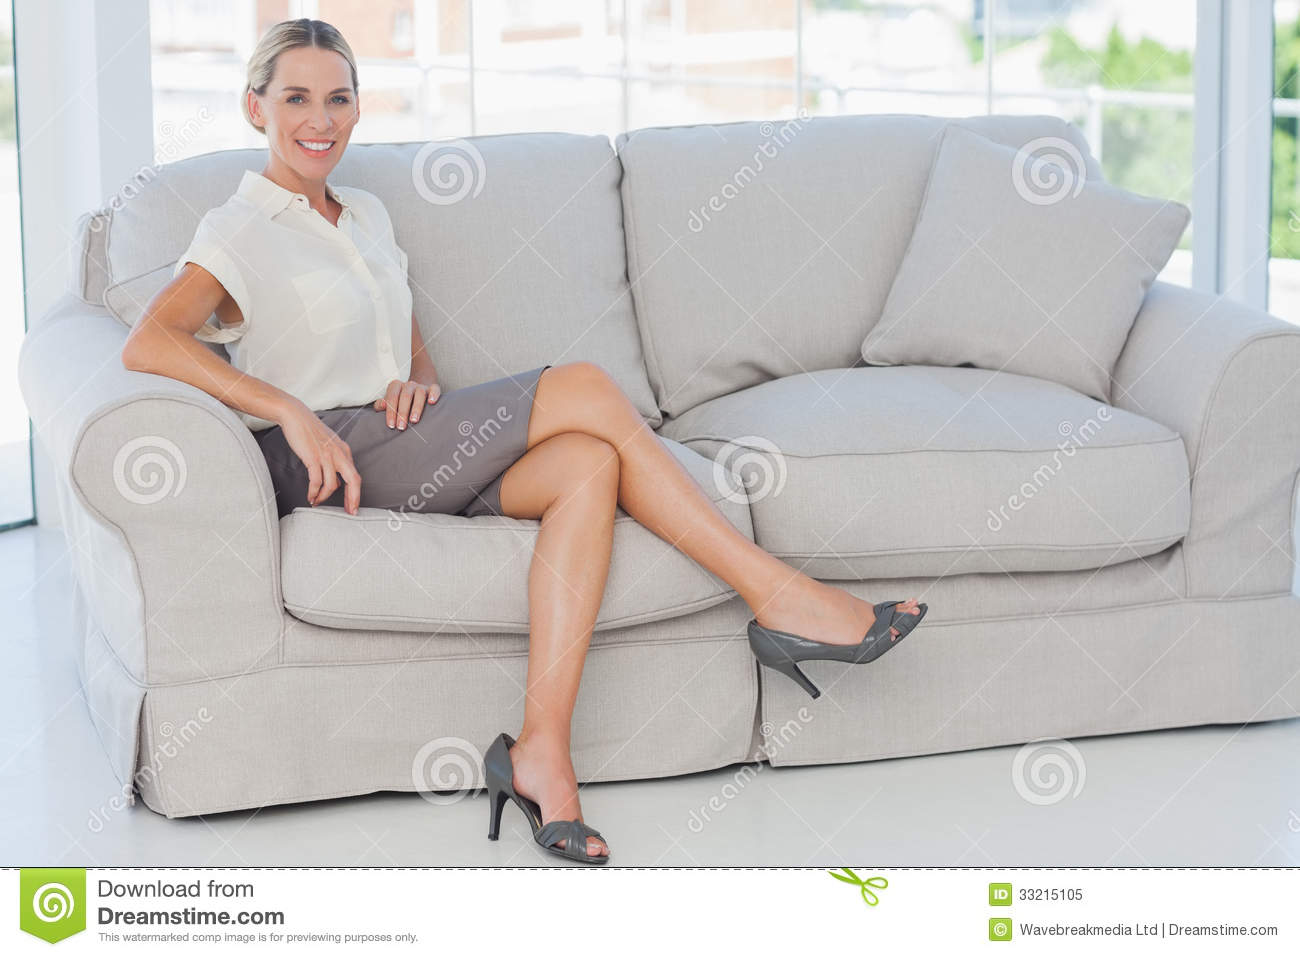 Free Sexmovie Blond Sofa Attractive Blonde Businesswoman Posing Sitting On Sofa